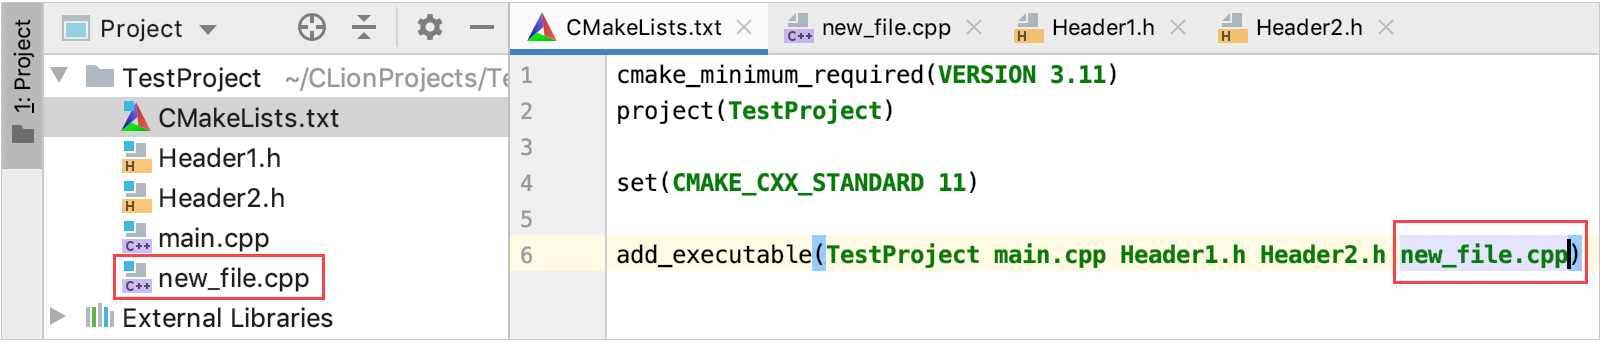 New file added to the selected CMake target